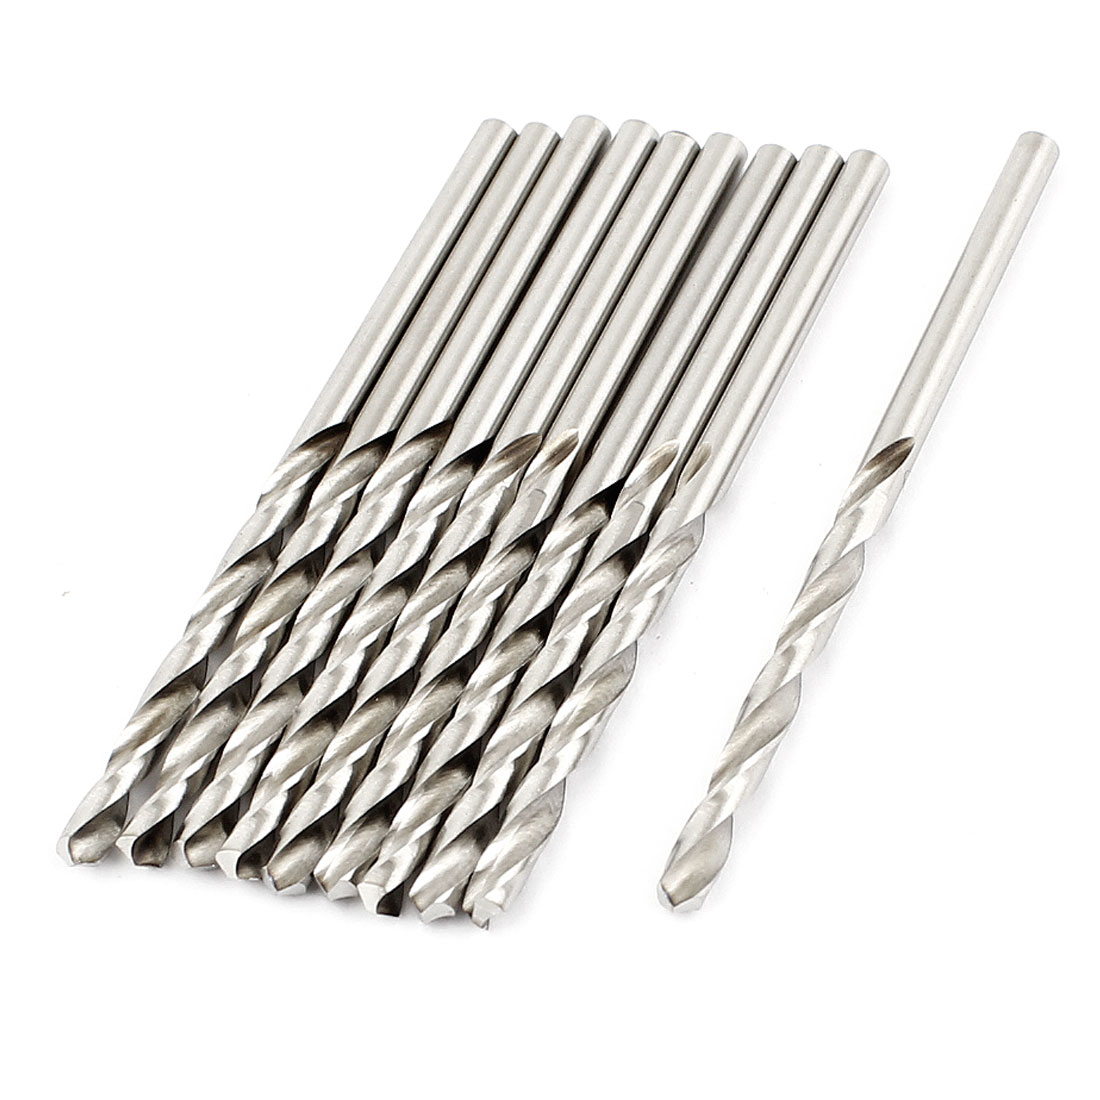 10 Pcs 33mm Length 2.8mm Dia Marable HSS Twist Drilling Drill Bit